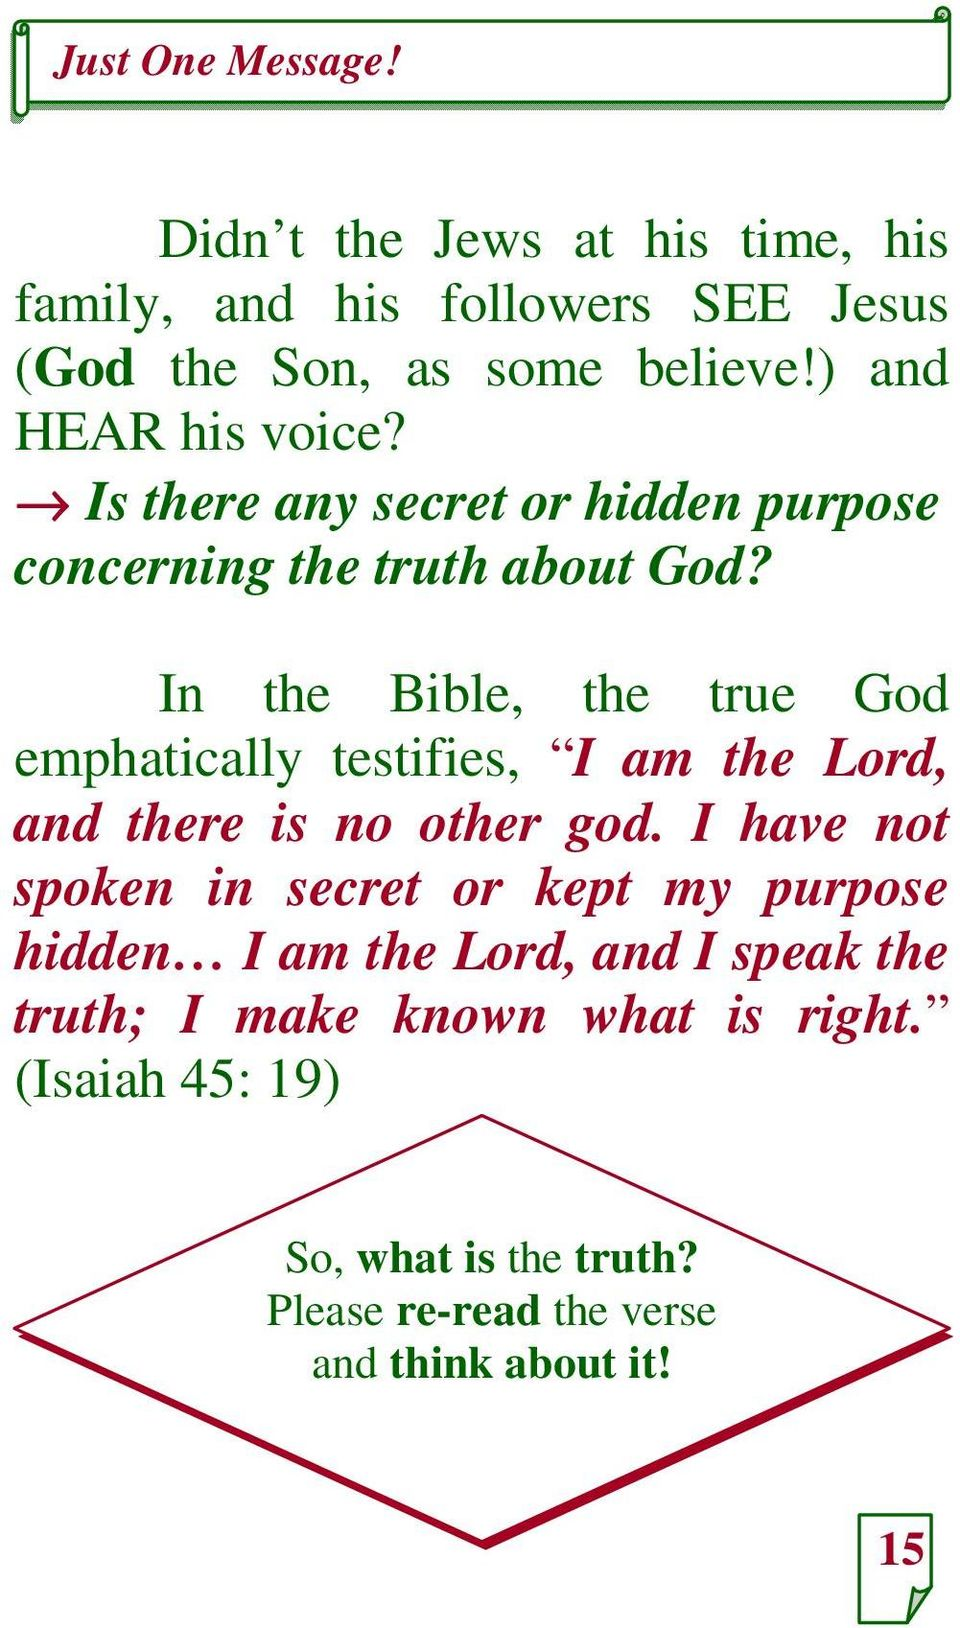 In the Bible, the true God emphatically testifies, I am the Lord, and there is no other god.